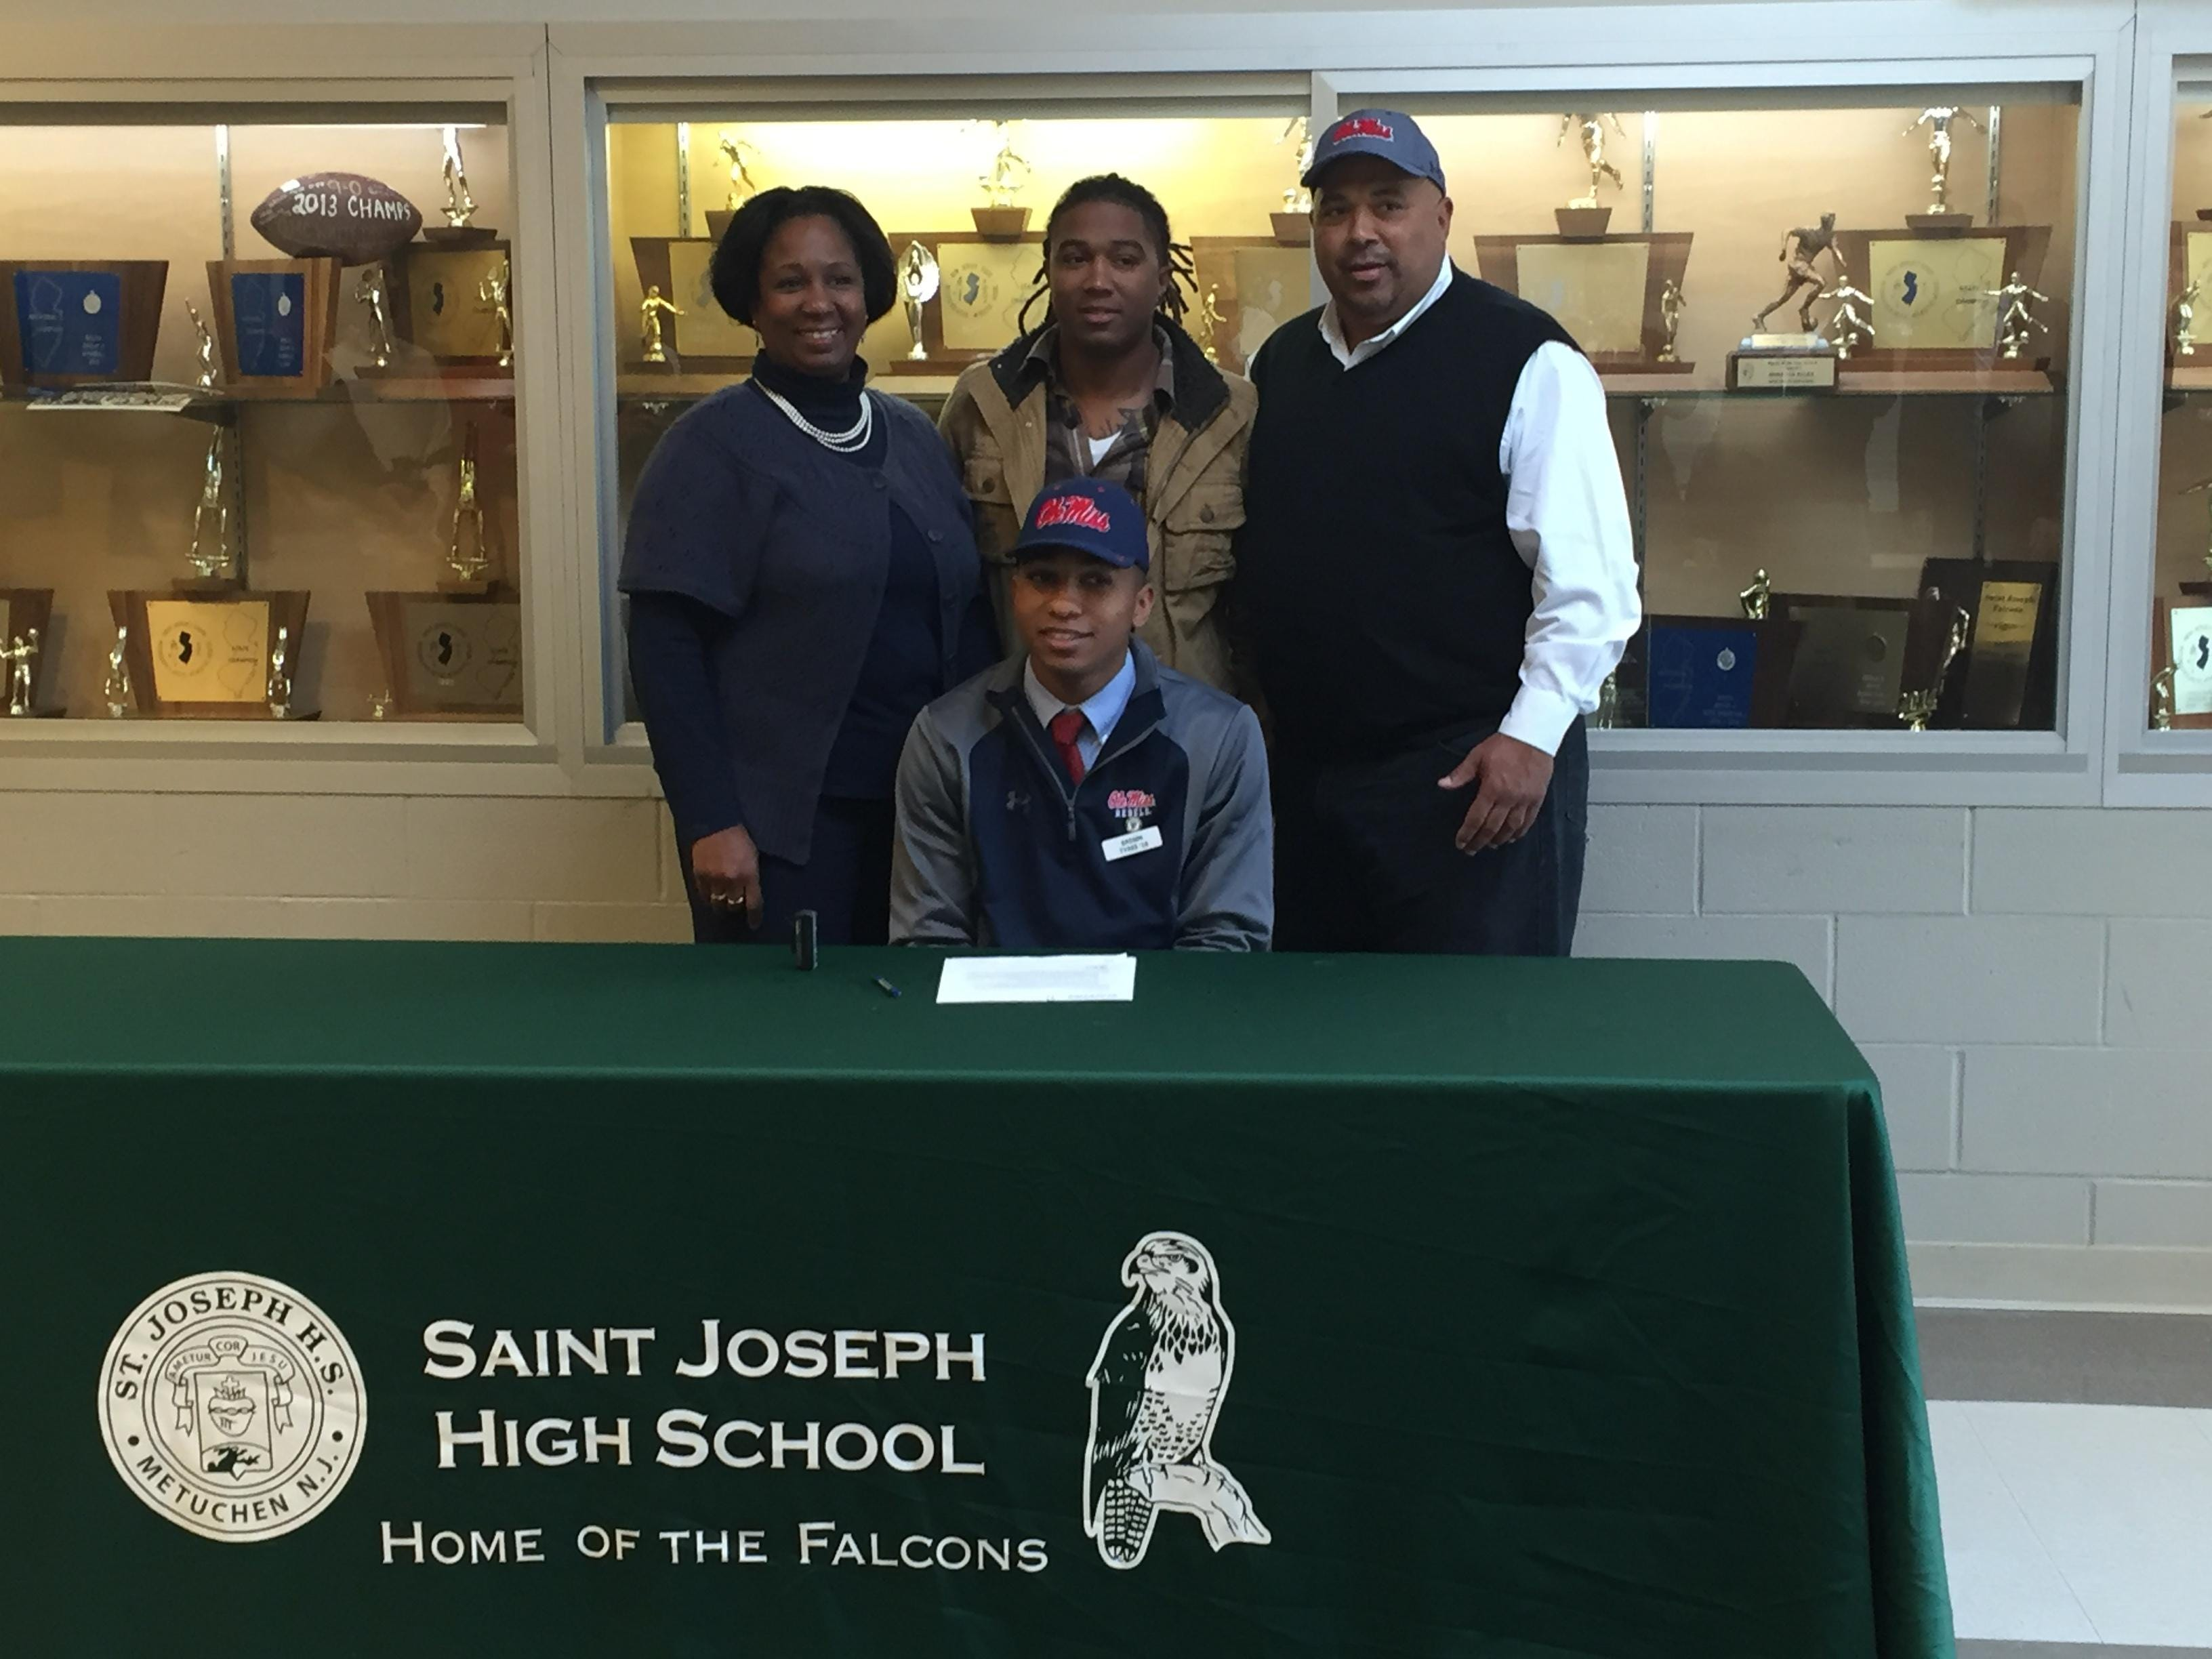 St. Joseph's Breein Tyree signs his National Letter of Intent to play basketball for the University of Mississippi surrounded by his family on Wednesday.